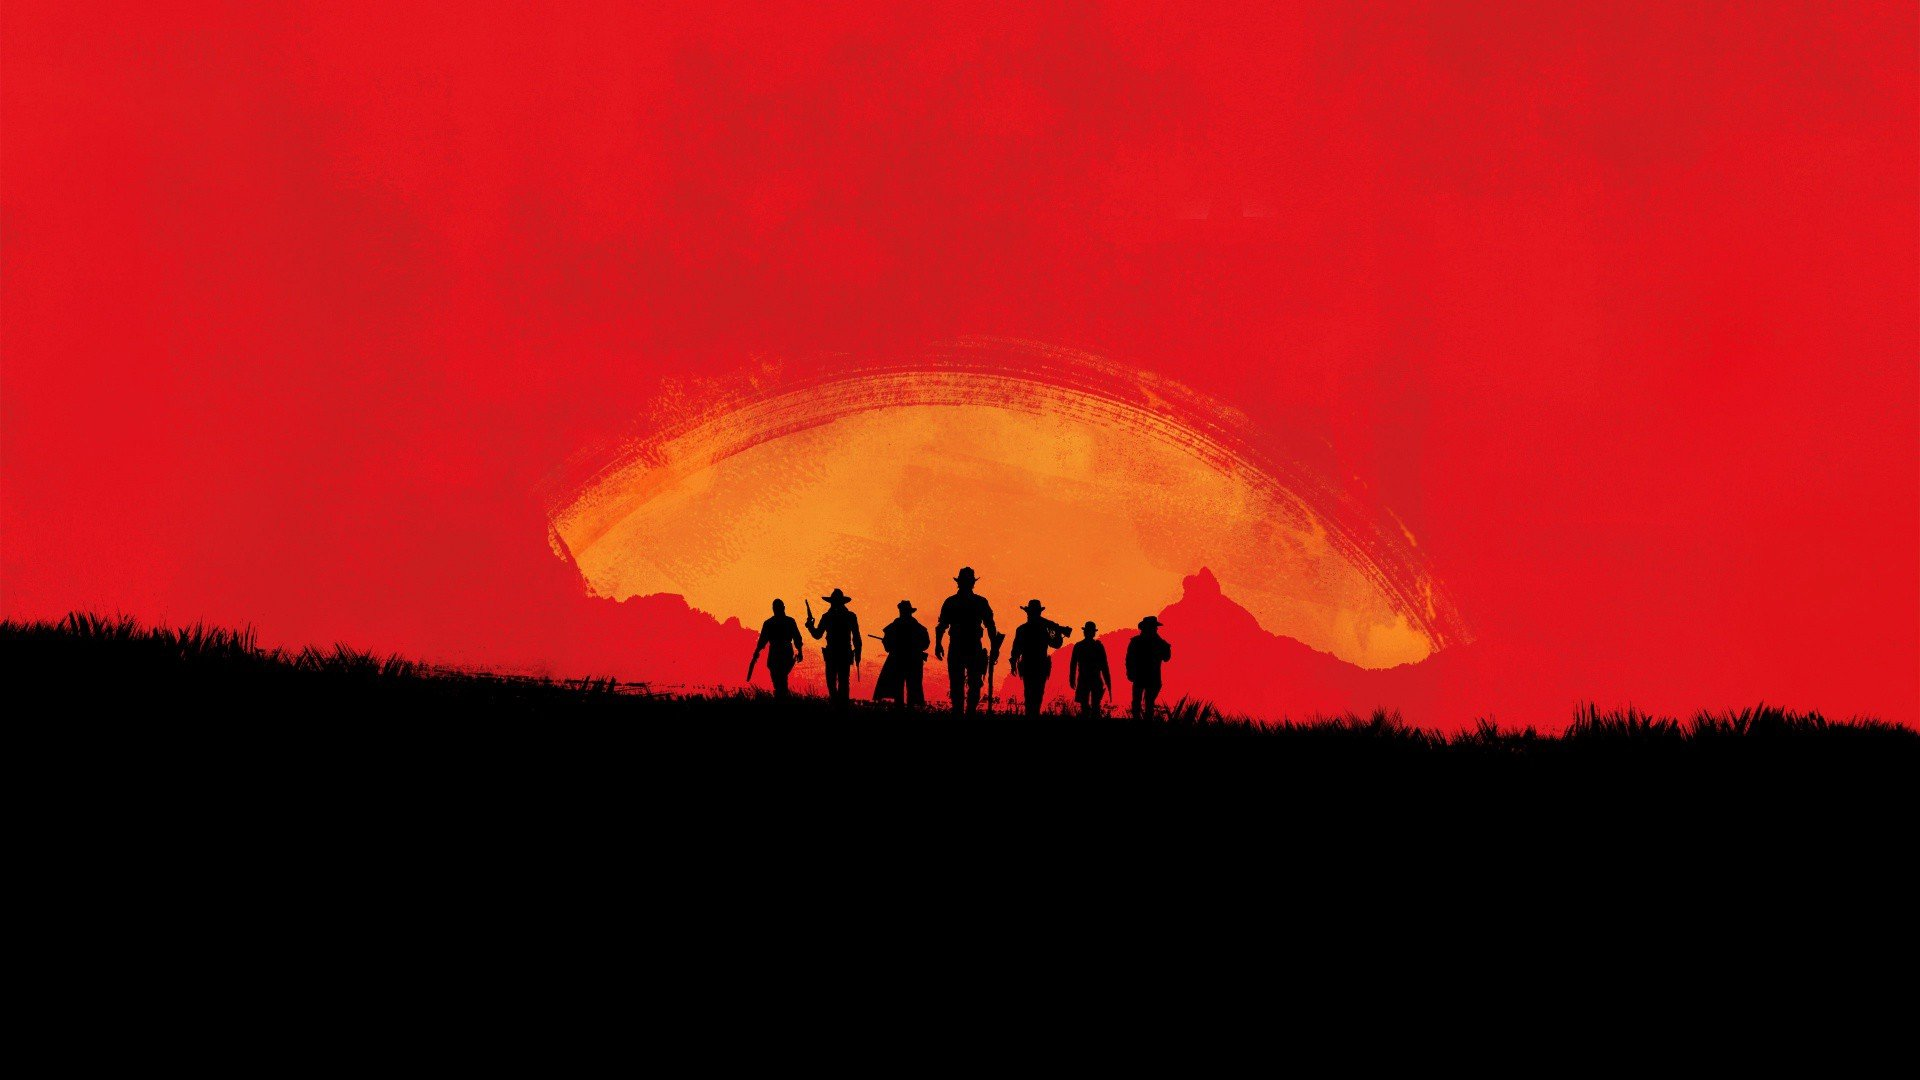 Red Dead Redemption 2 Wallpaper 4k Posted By Samantha Sellers